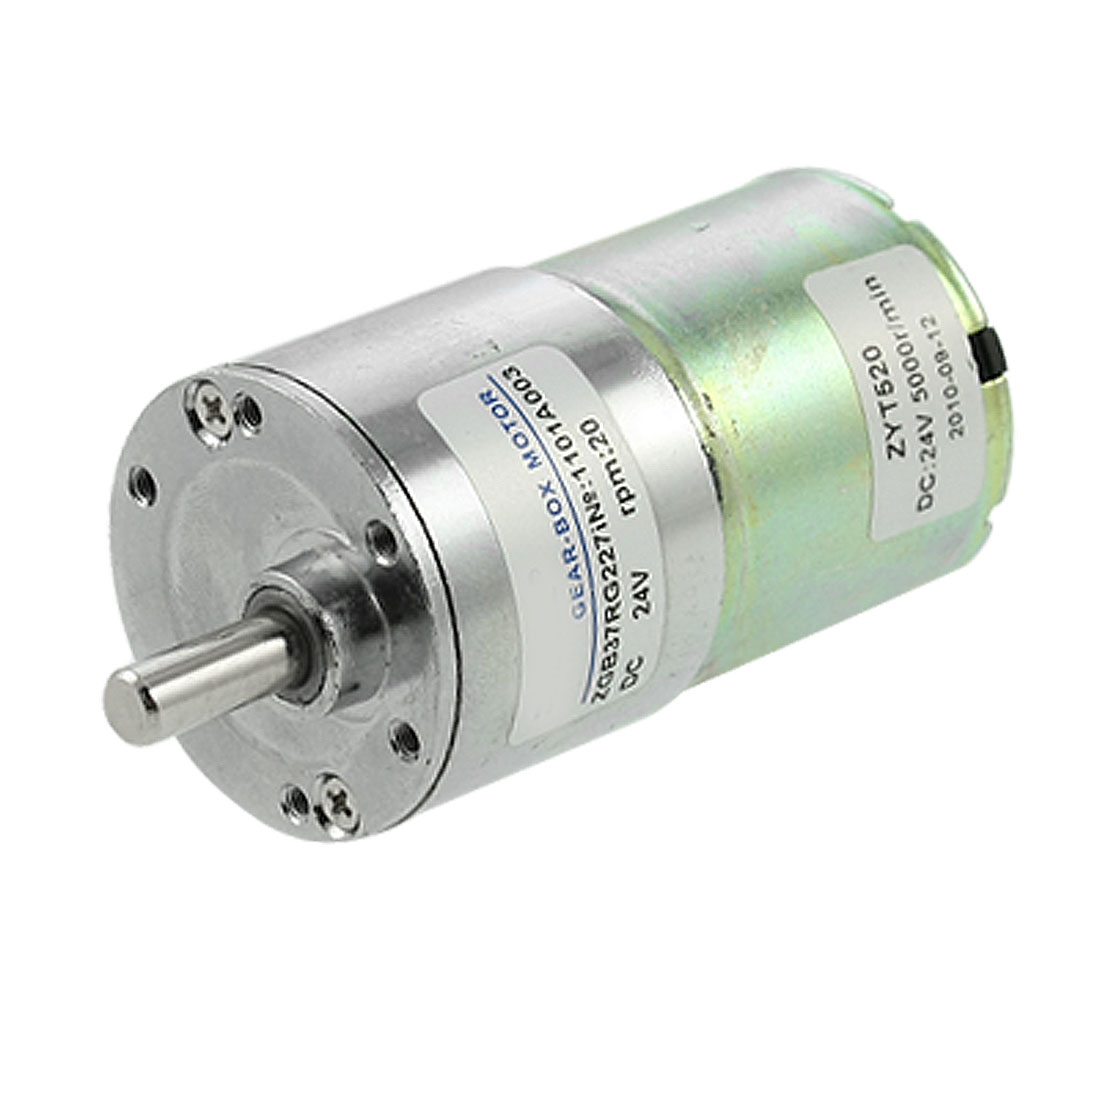 Electric 37mm Gearbox Diameter DC Geared Motor 0.33A 20RPM 24V